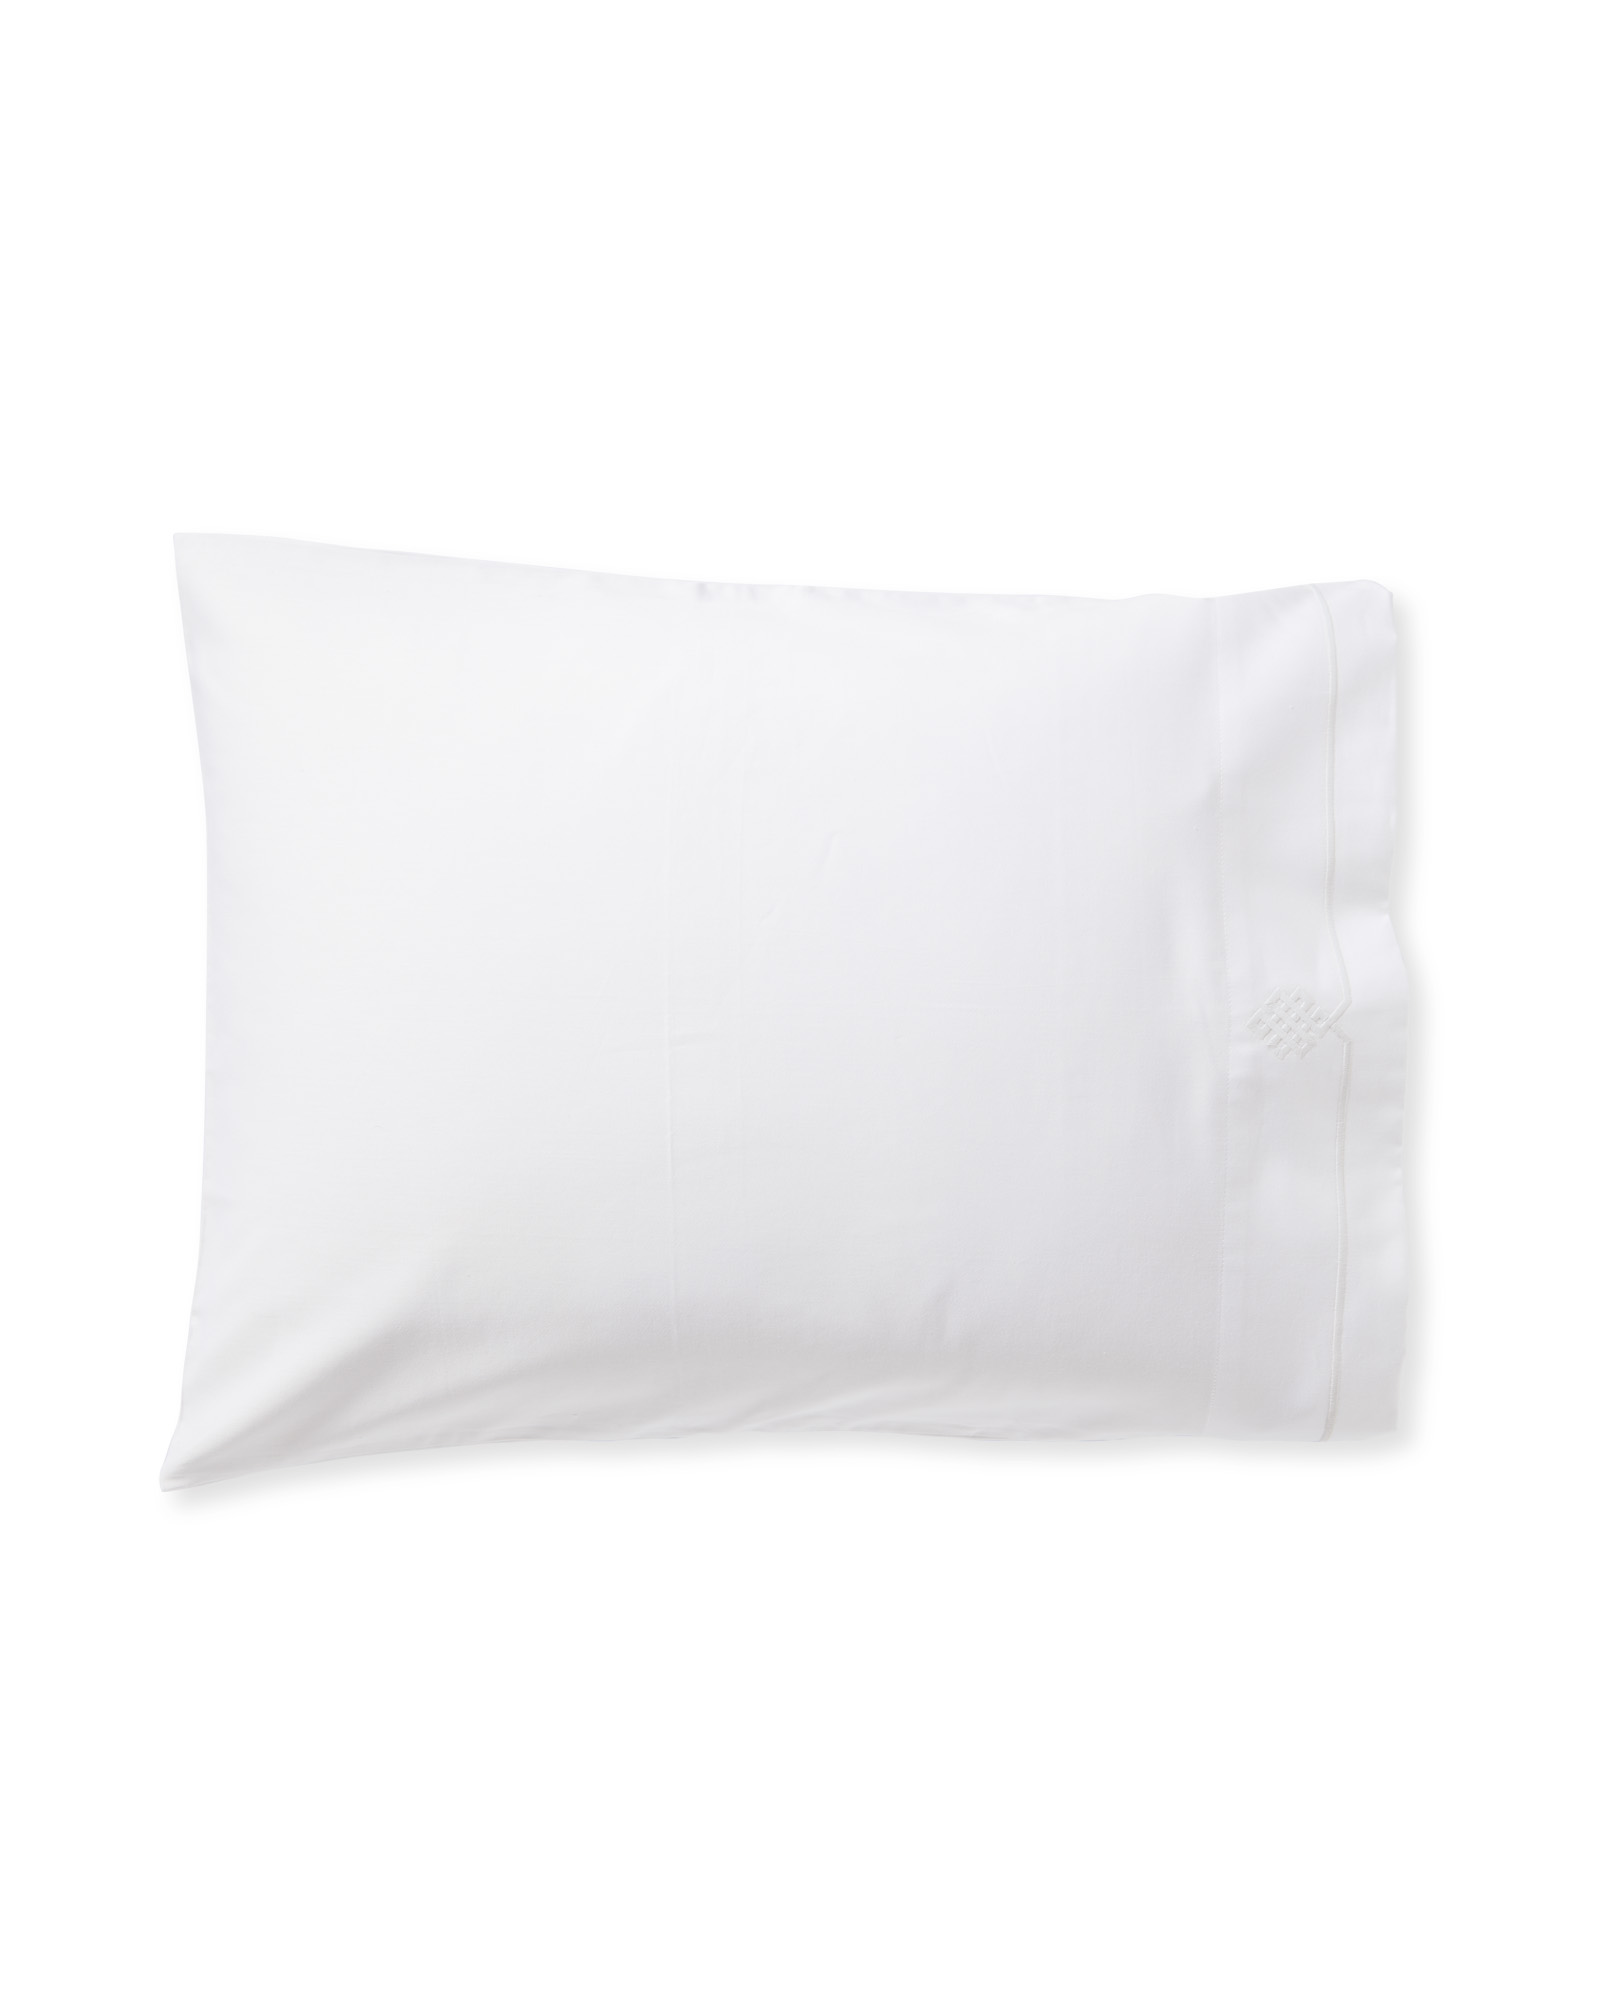 Soho Pillowcases (Set of 2), White